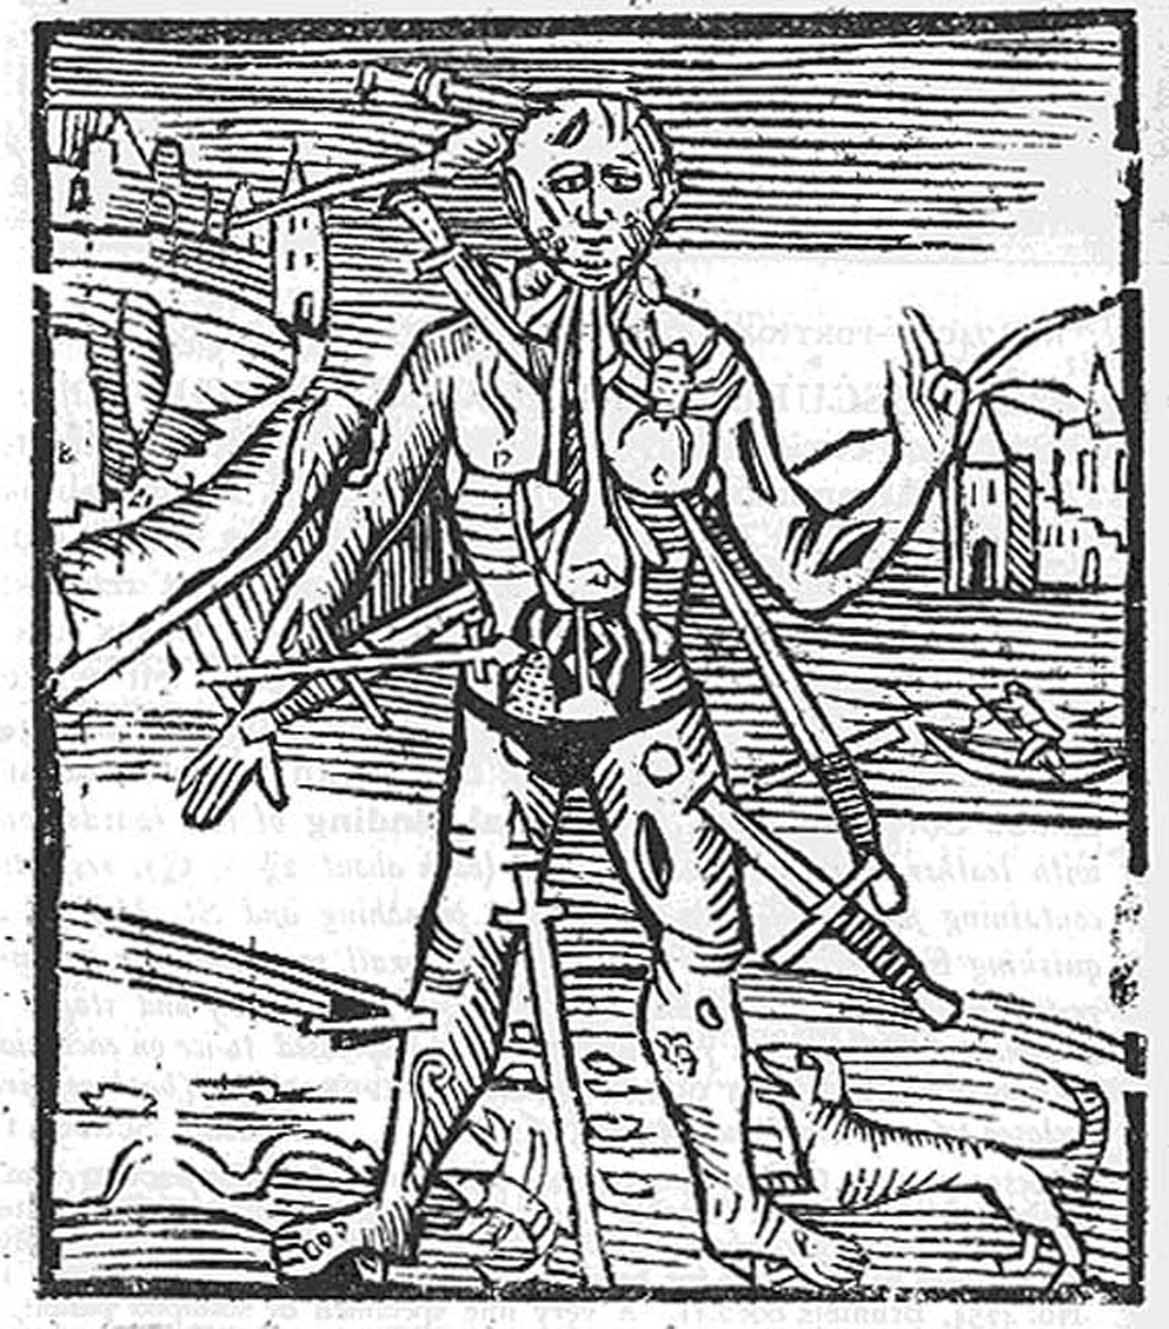 the melothesic zodiacal man narrative on the body  each part of the body was influenced by a zodiacal association often determining the times and nature of surgery